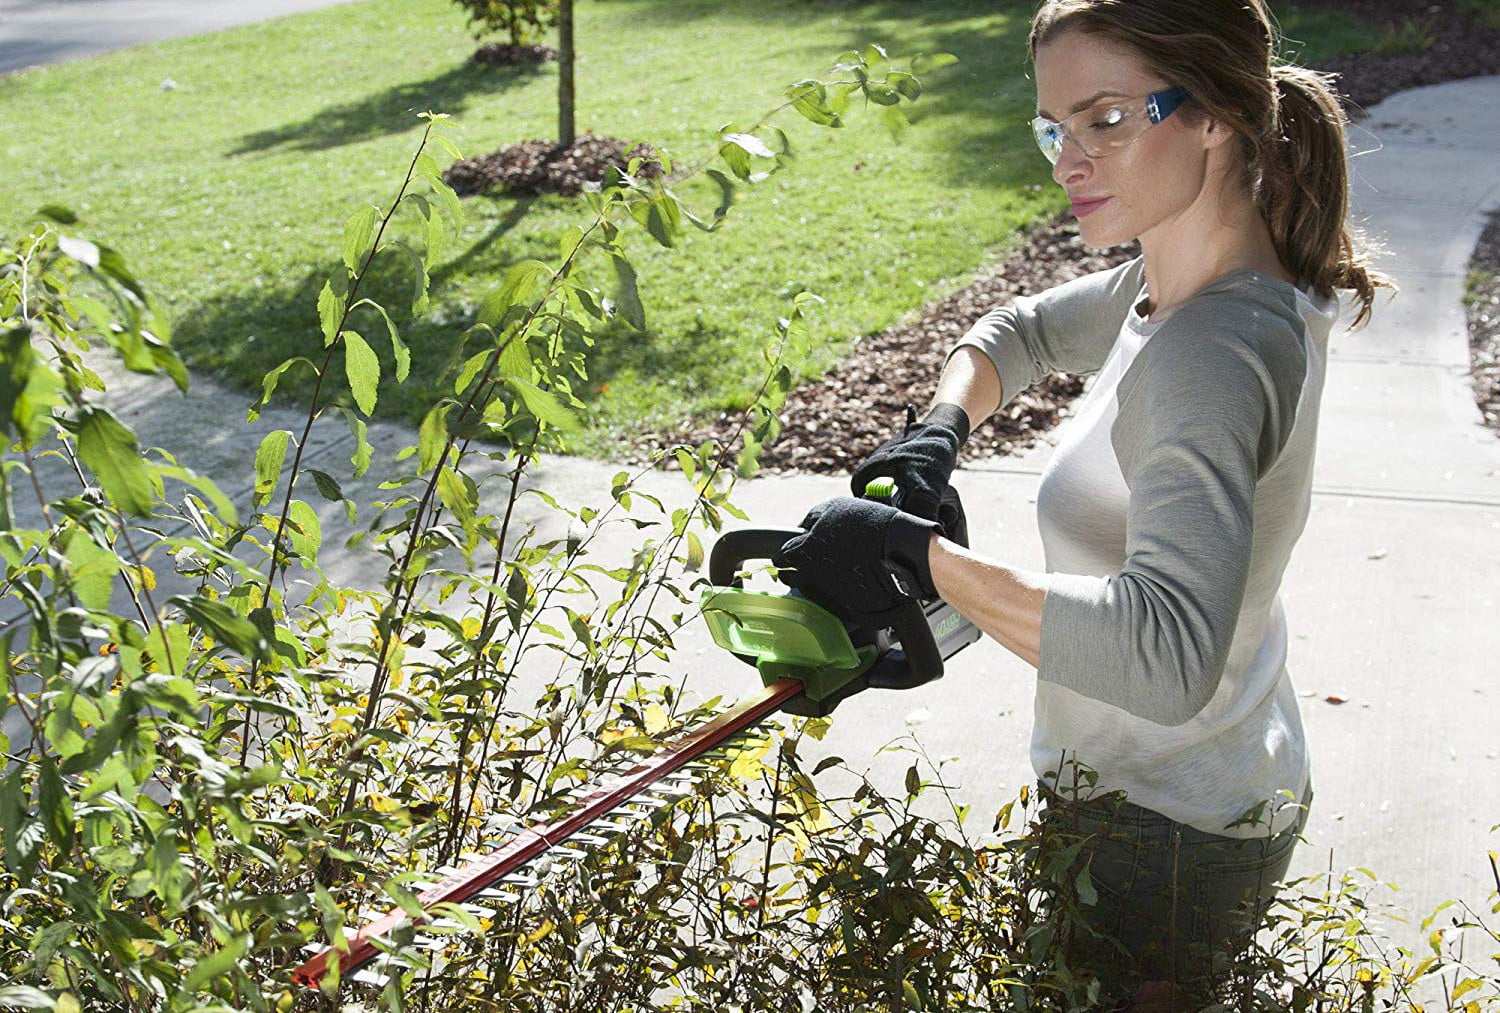 amazon deals on greenworks pressure washers and yard tools 24 inch 40v cordless hedge trimmer 2